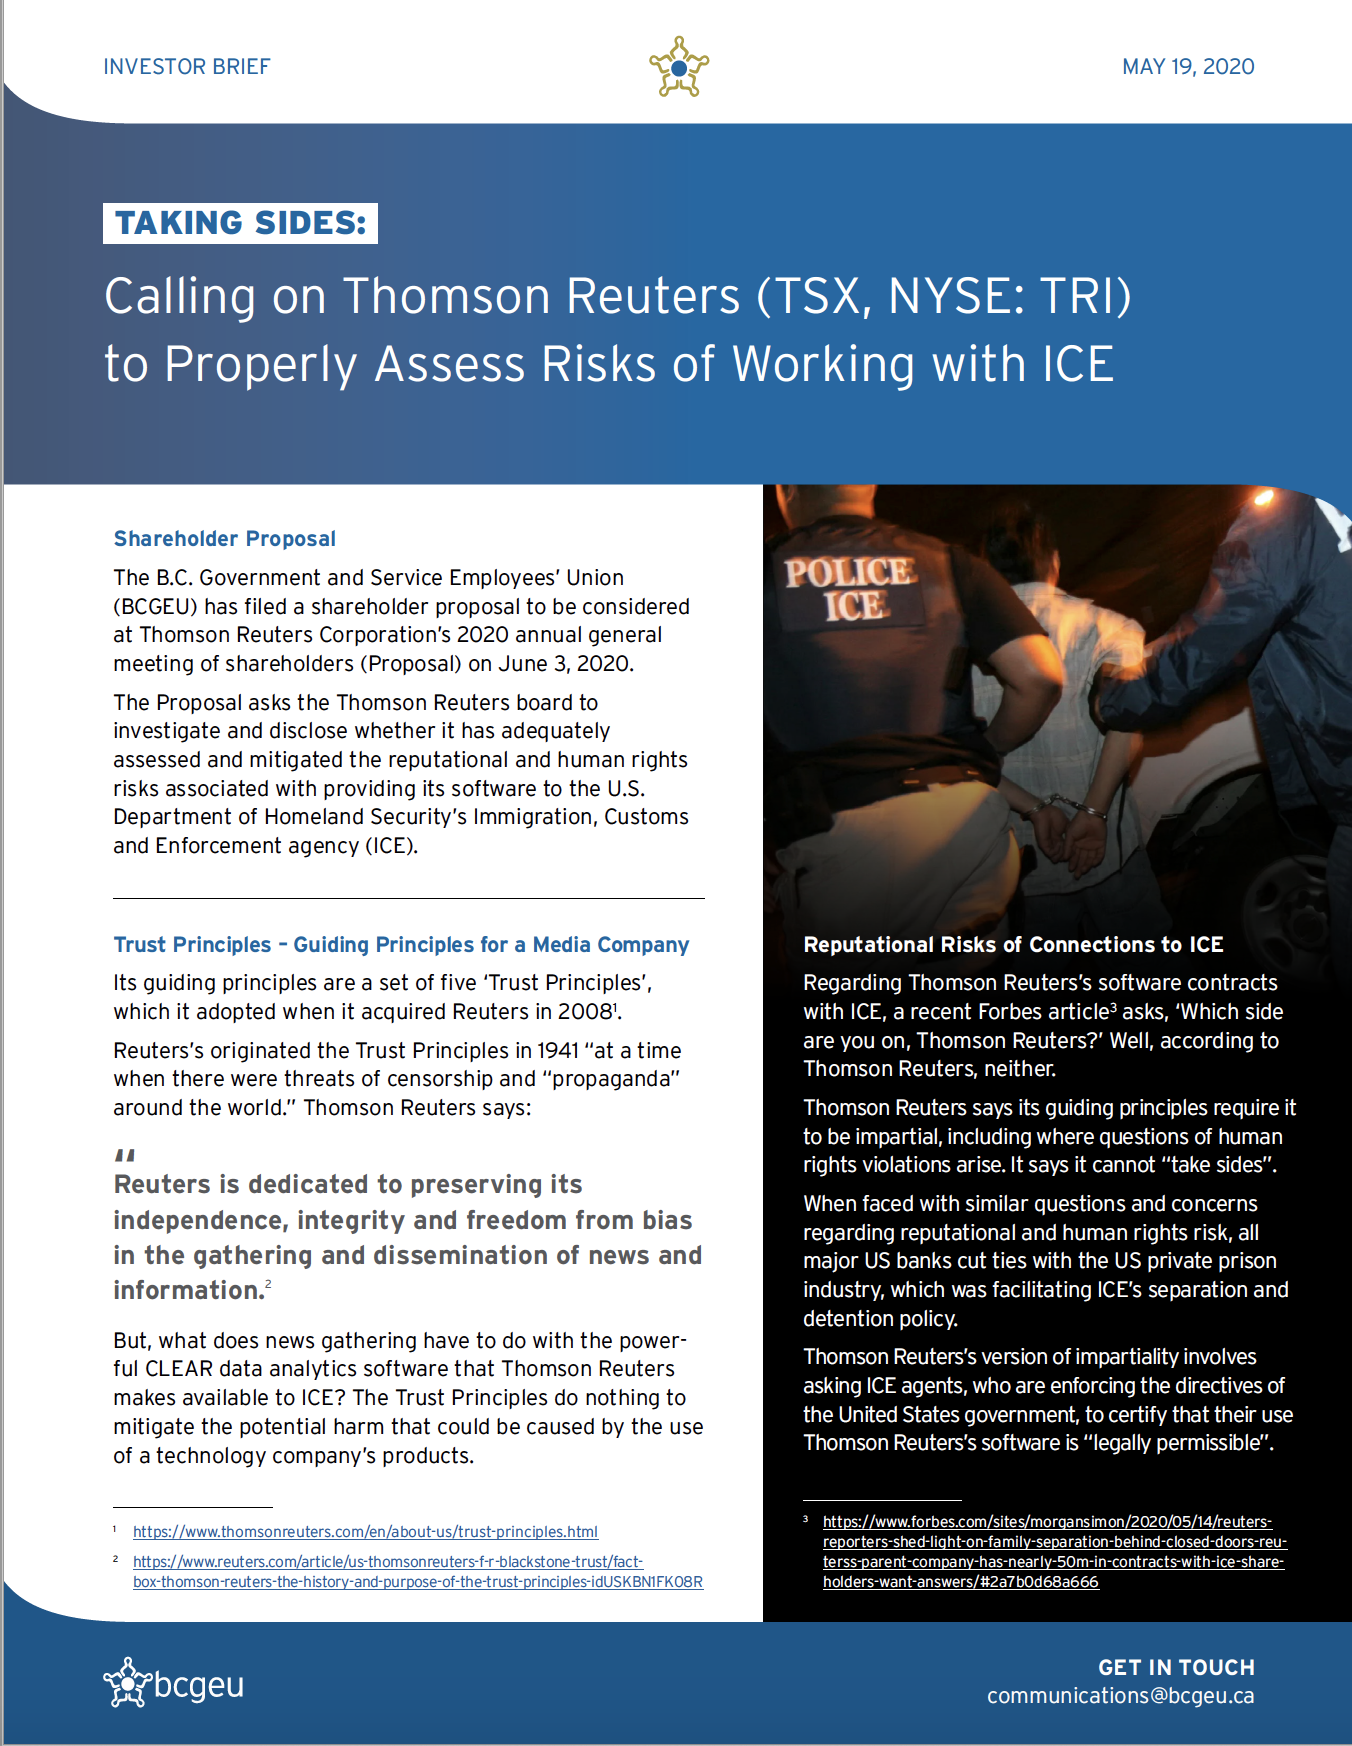 Cover of BCGEU's Thomson Reuters Investor Brief